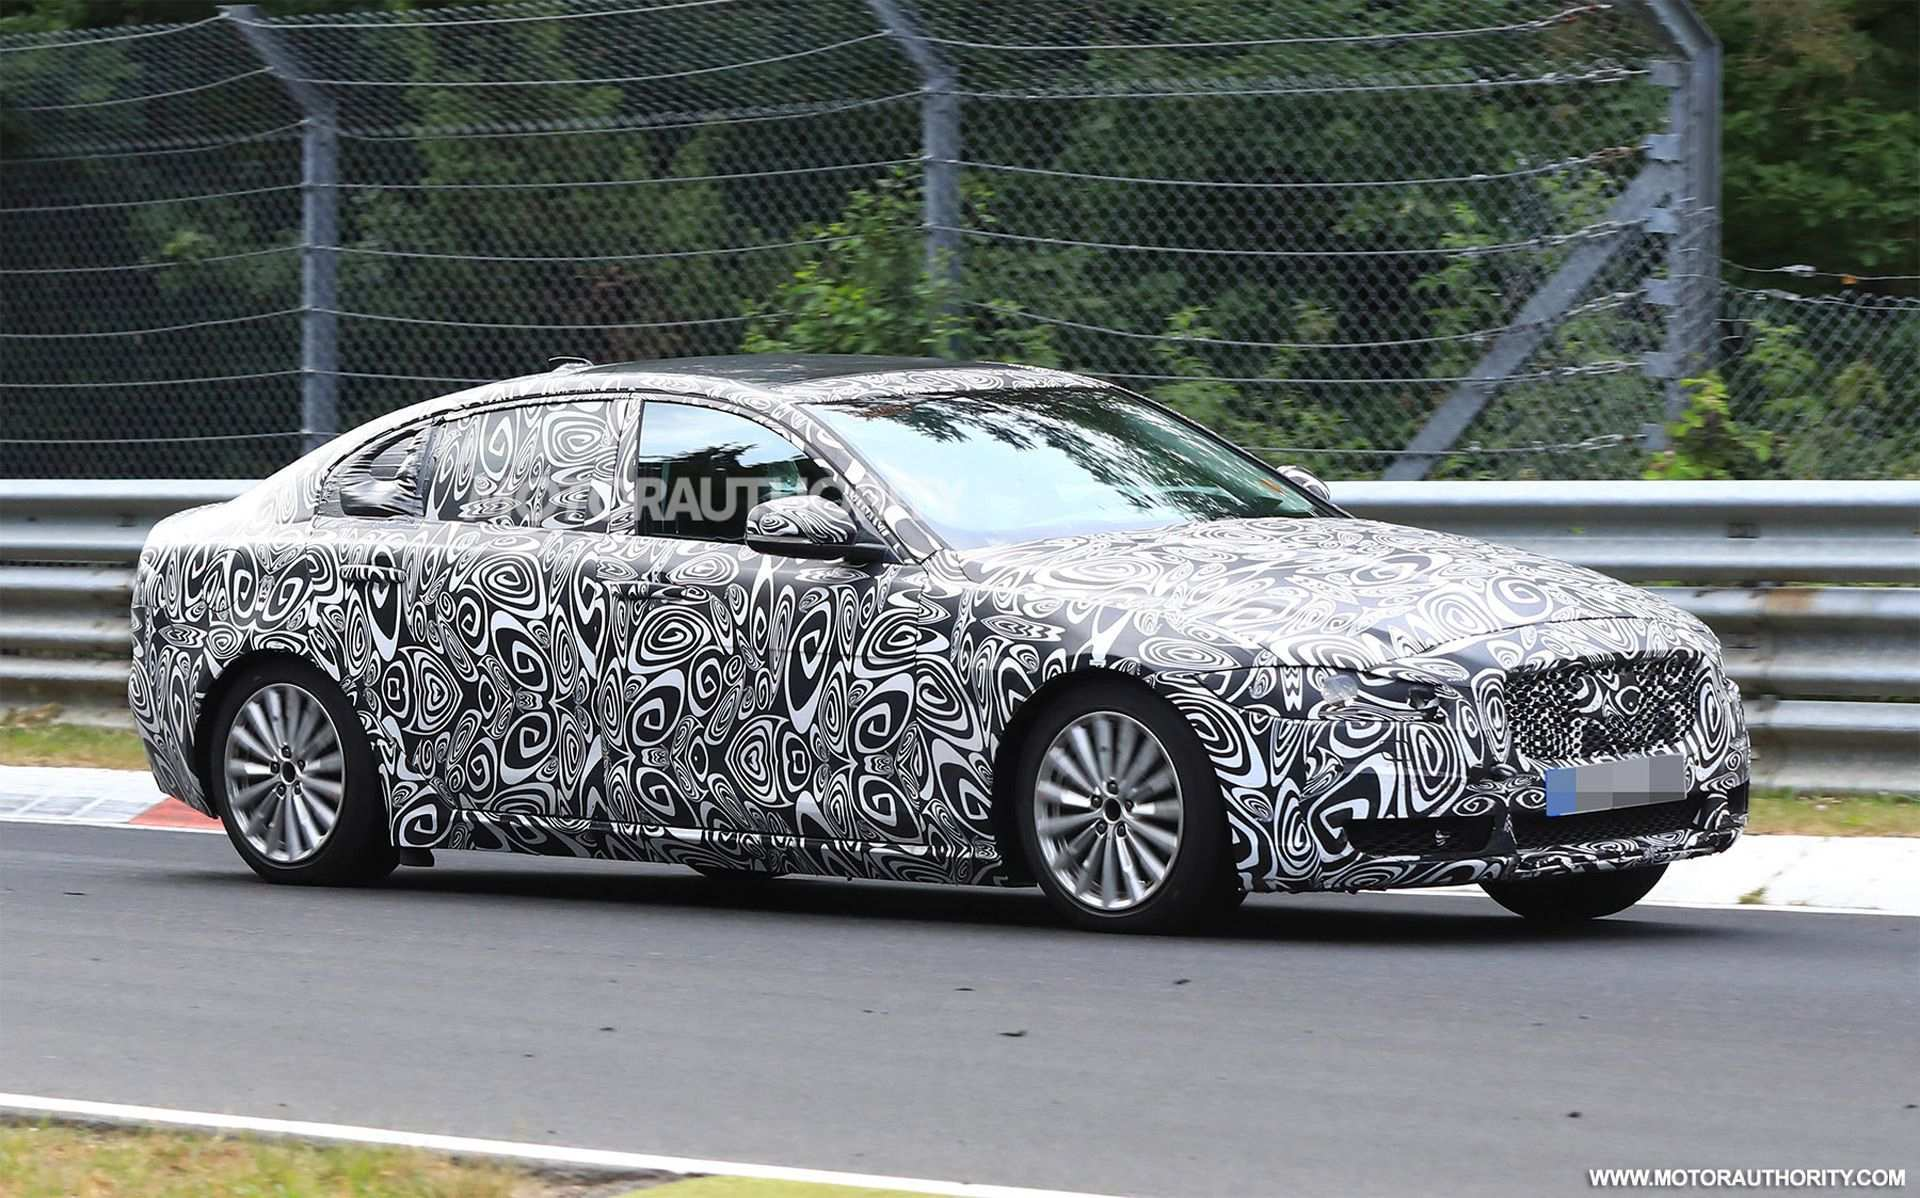 66 Gallery of 2020 Jaguar Xj Spy Photos with 2020 Jaguar Xj Spy